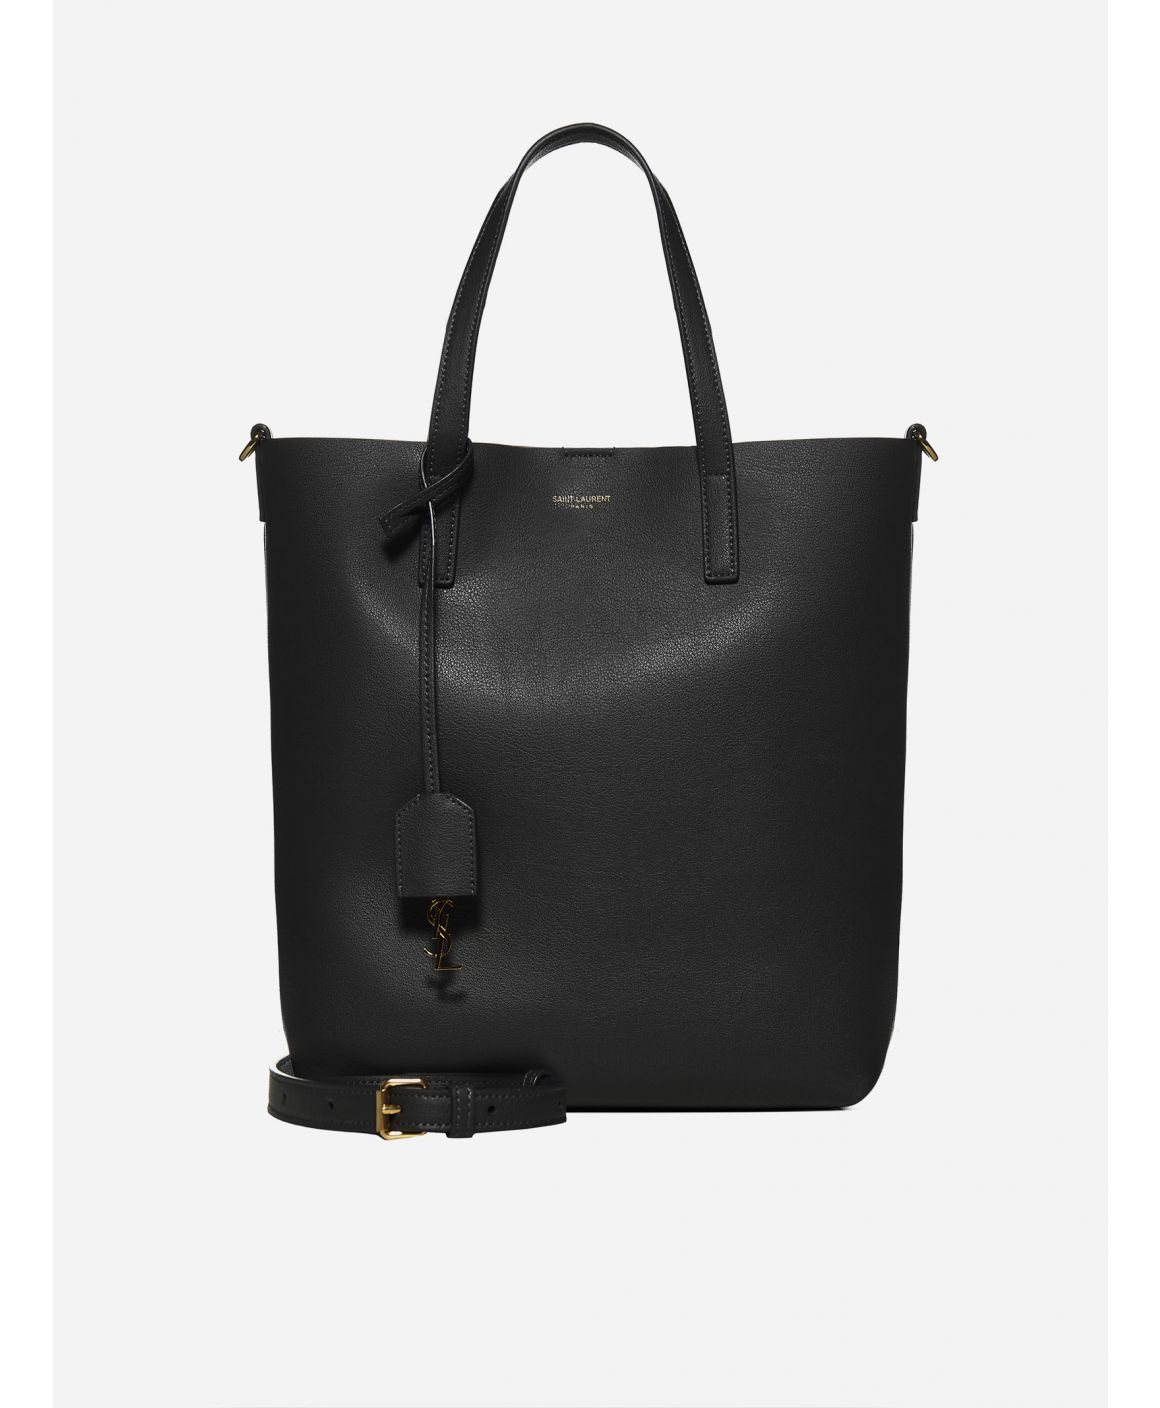 Toy leather tote bag